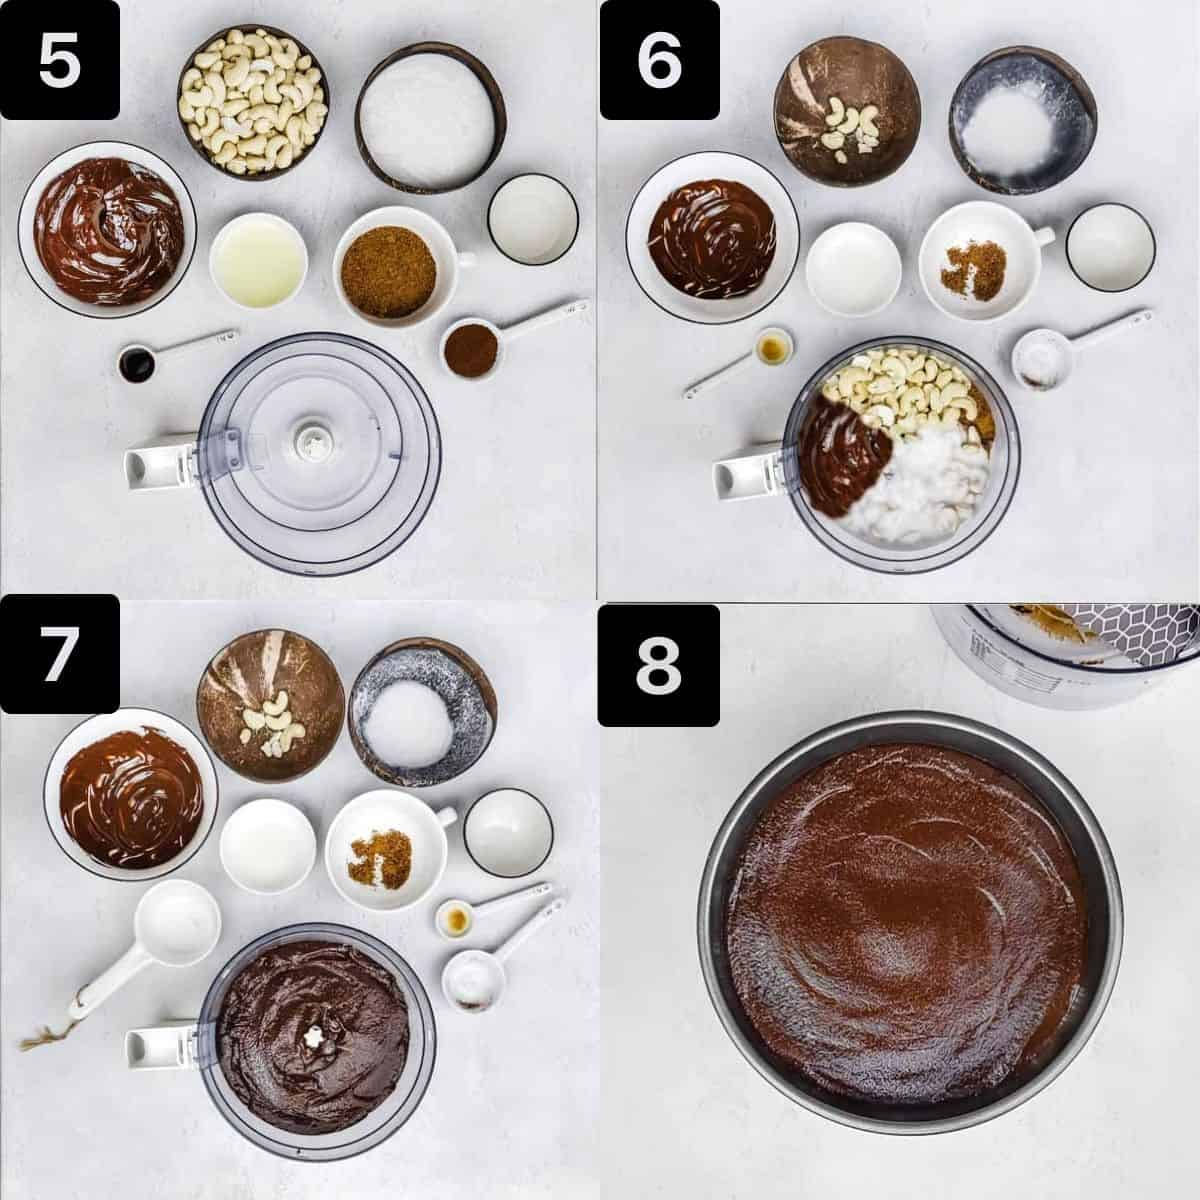 Four process shots to make the chocolate cheesecake filling.